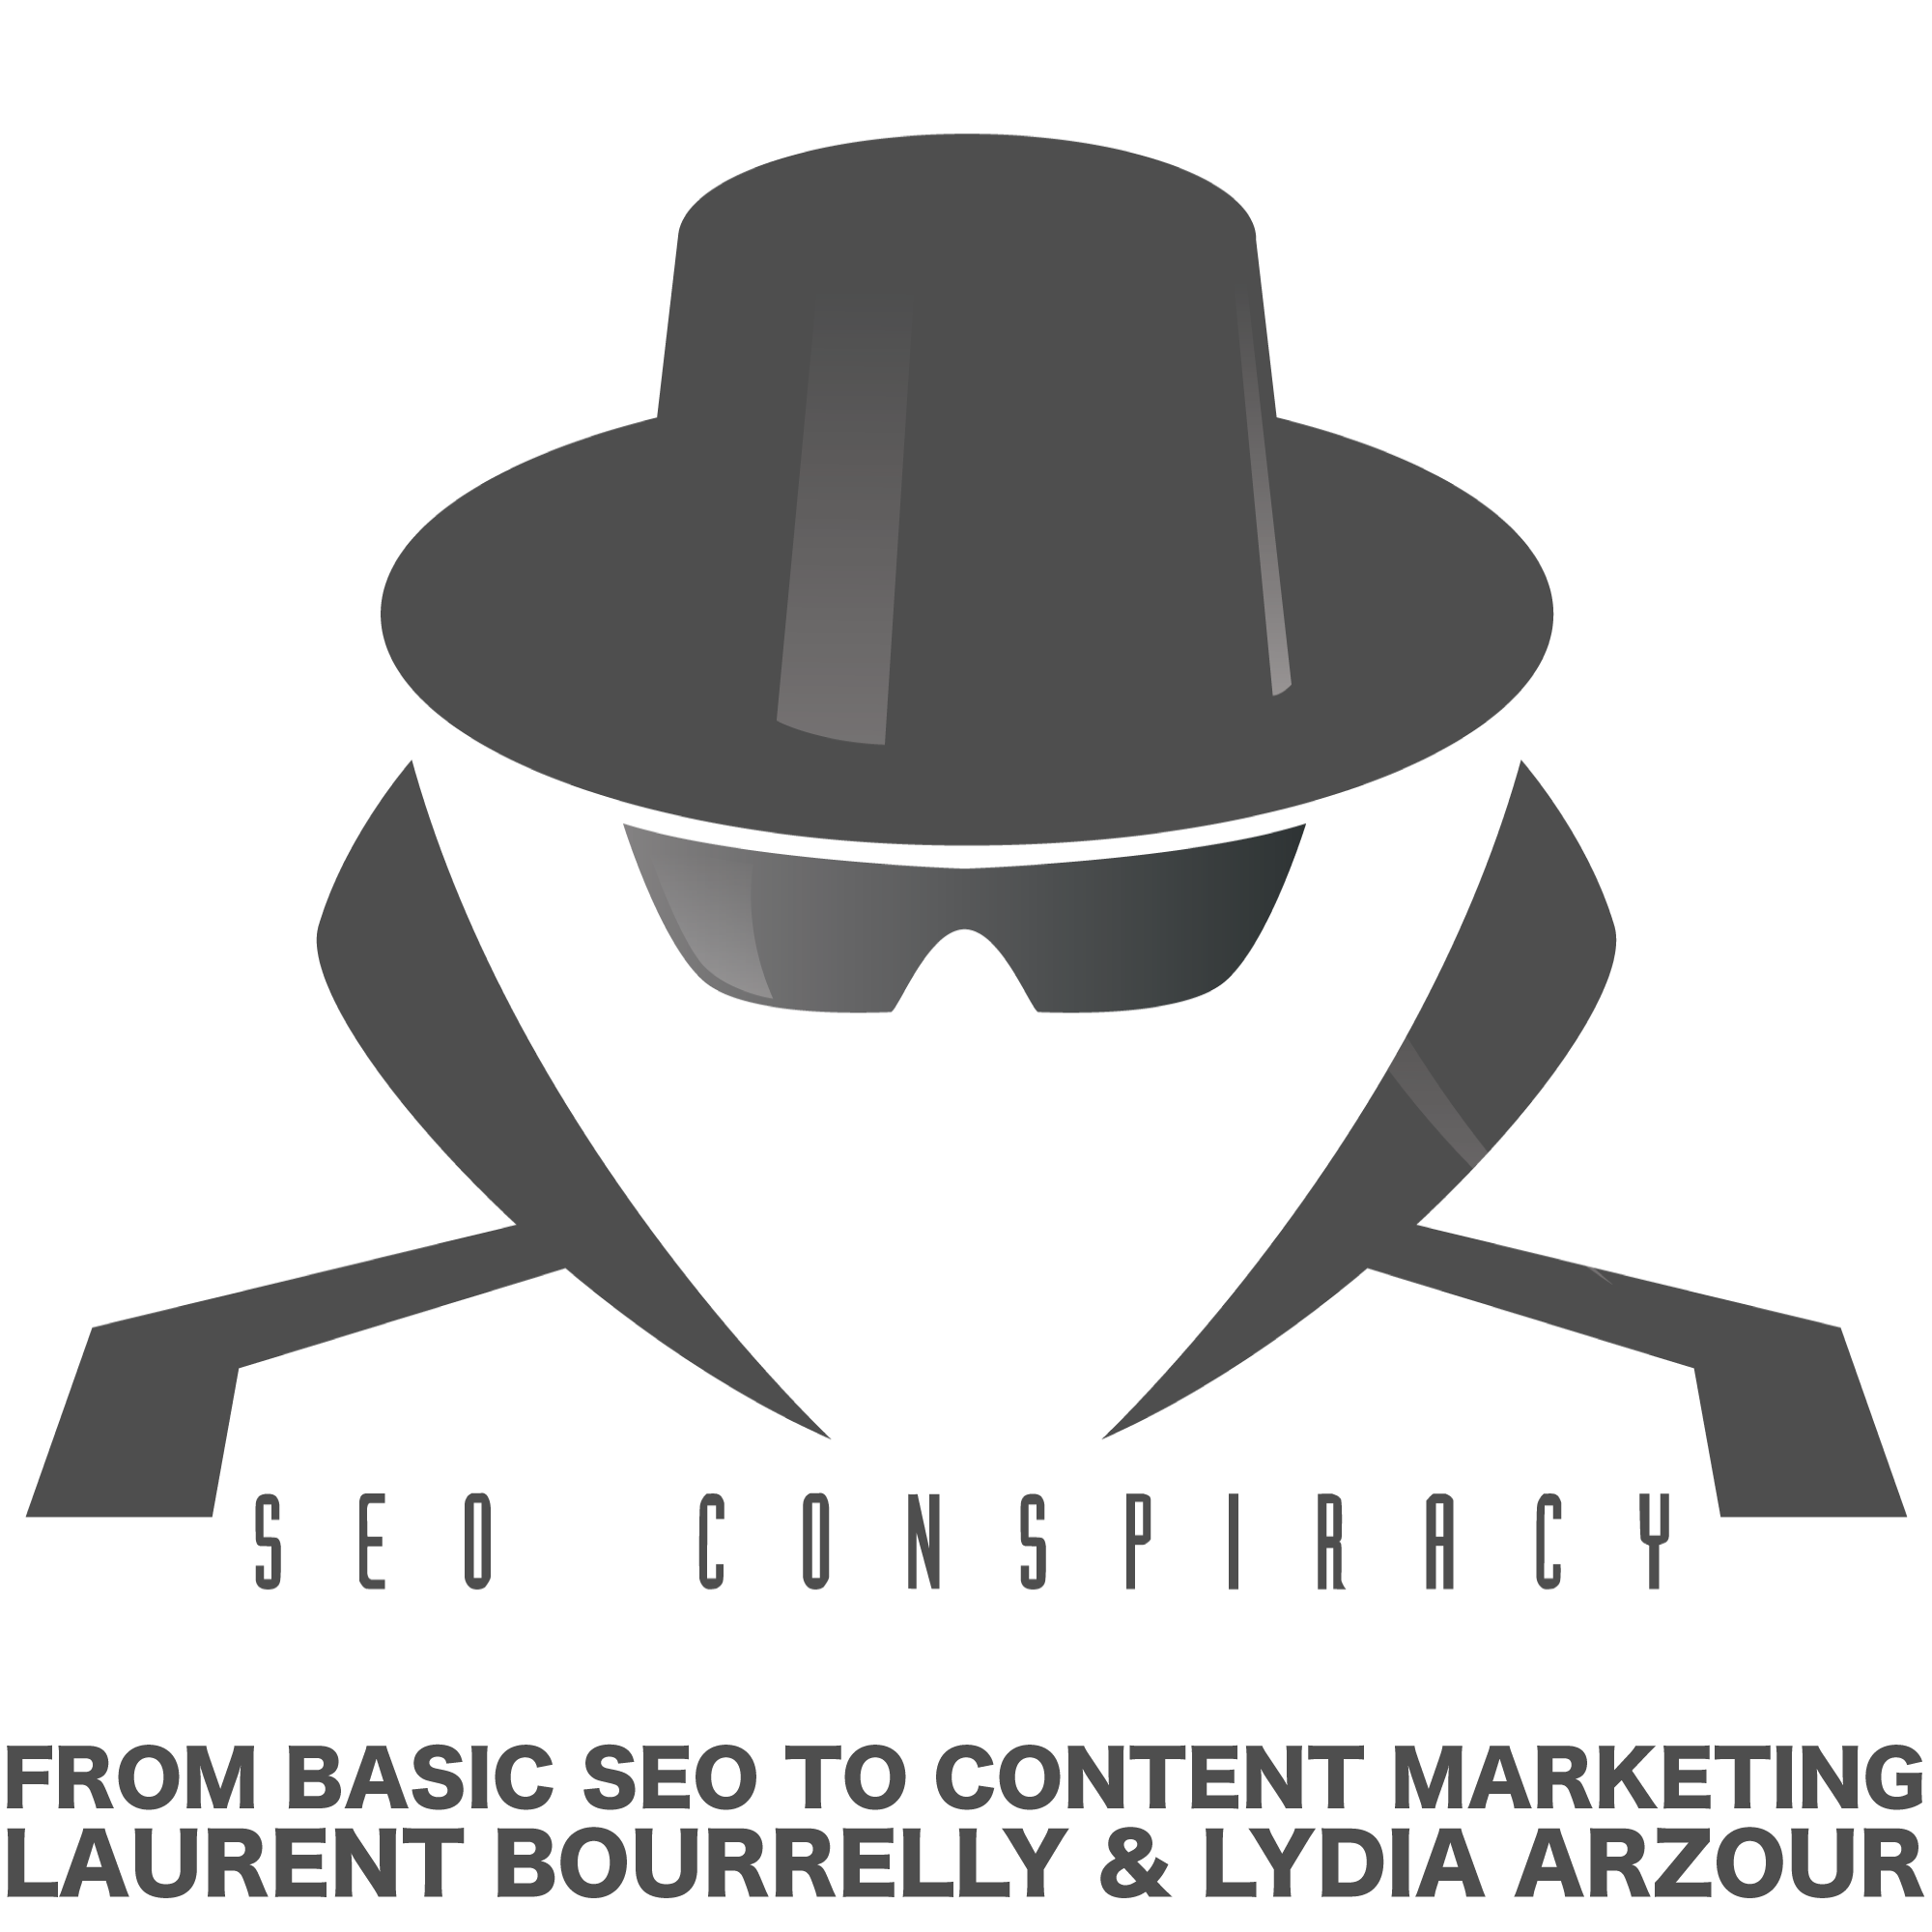 From Google Search Engine Optimization in 2000 to Content Marketing with SEO Layer in 2020